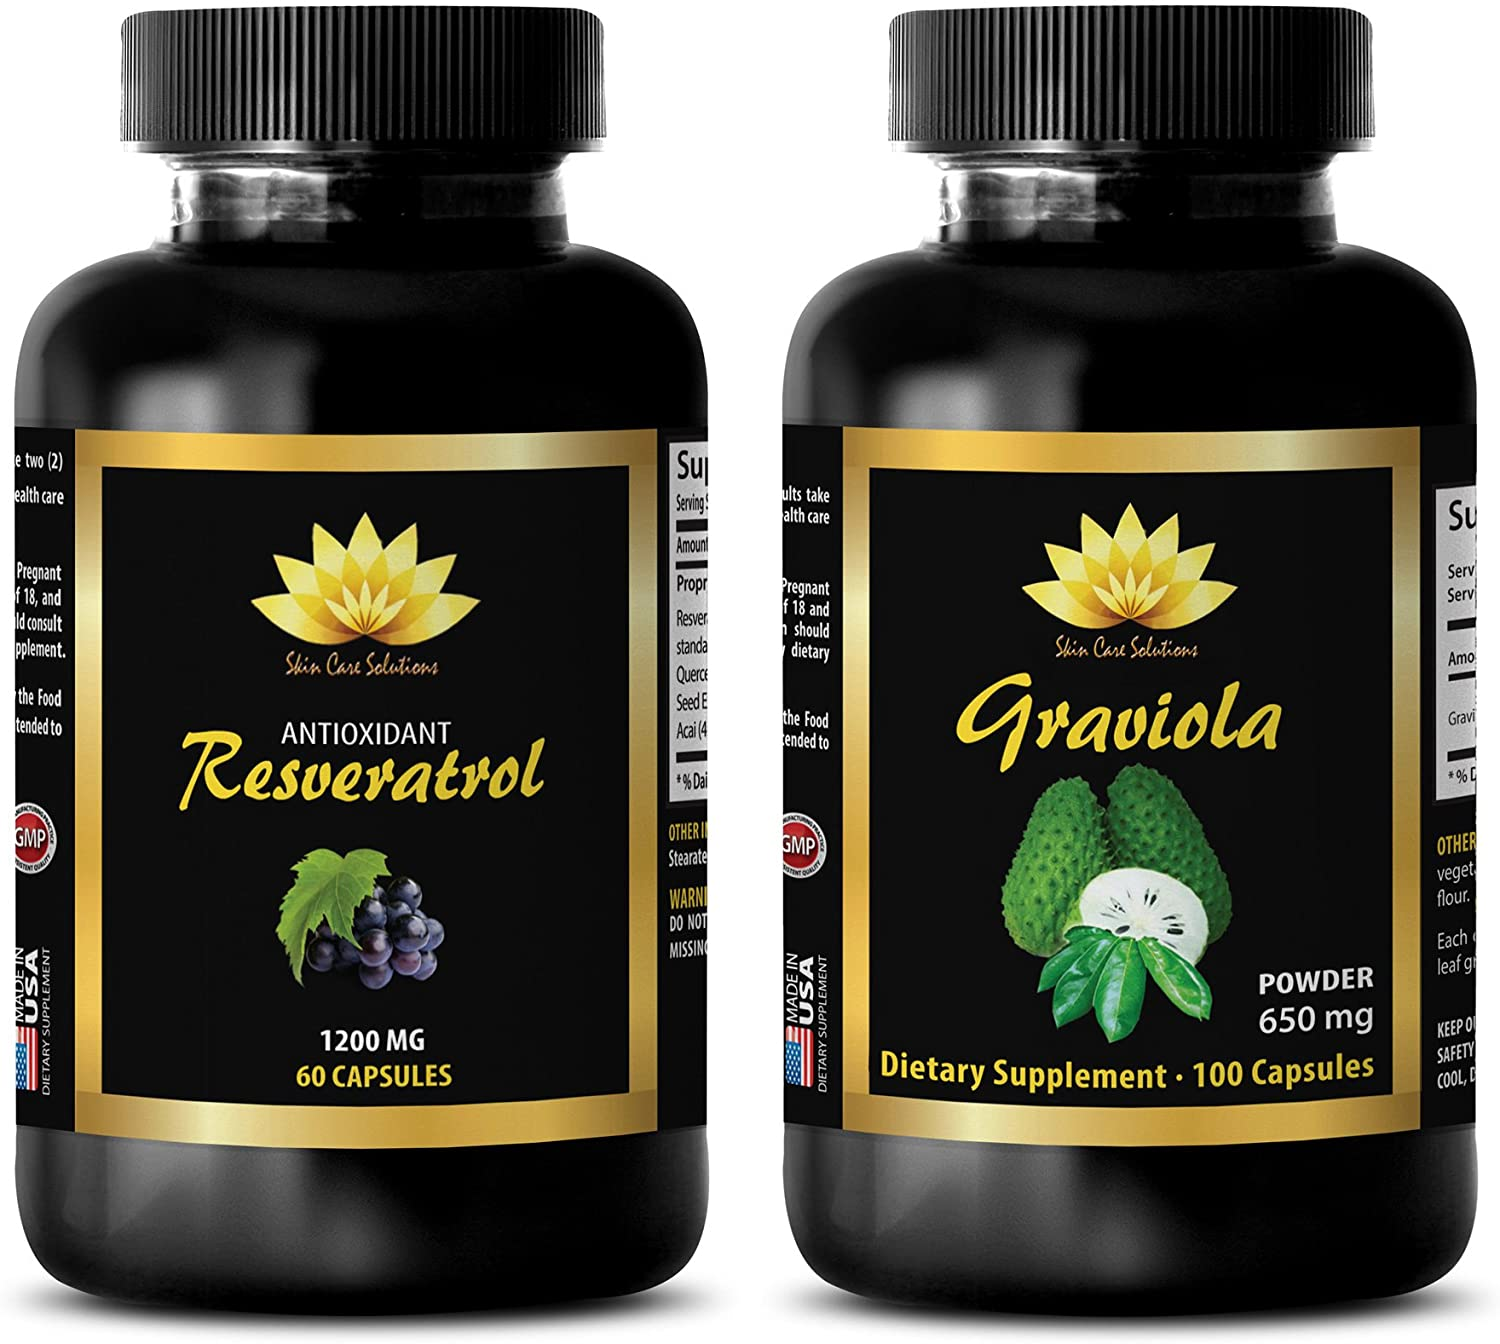 Weight Loss Protein Powder for Women - RESVERATROL – GRAVIOLA Combo - resveratrol Aging Supplements - 2 Bottles - (60+60 Capsules)